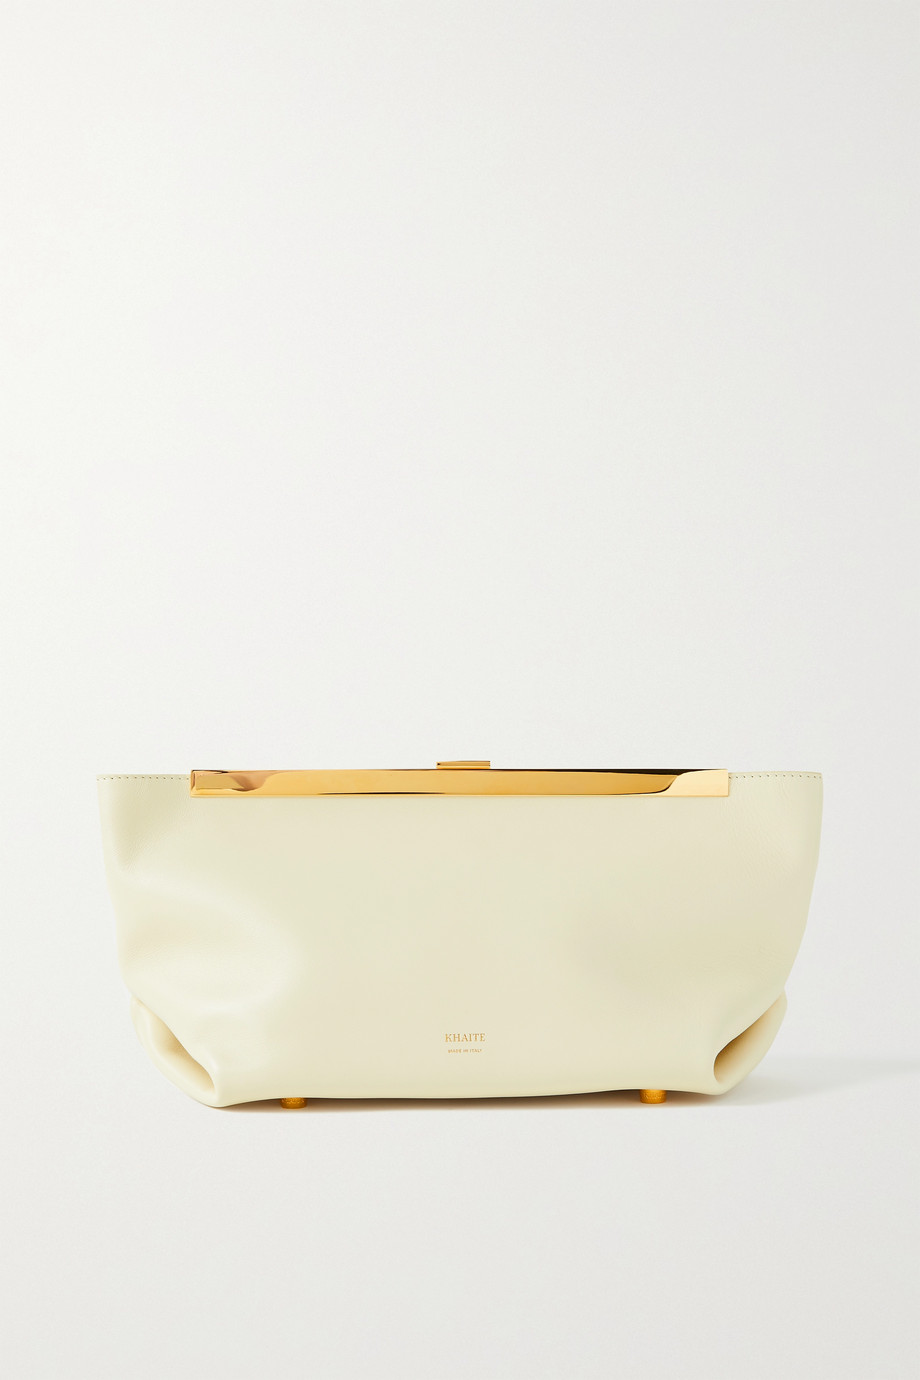 Khaite Aimee leather clutch